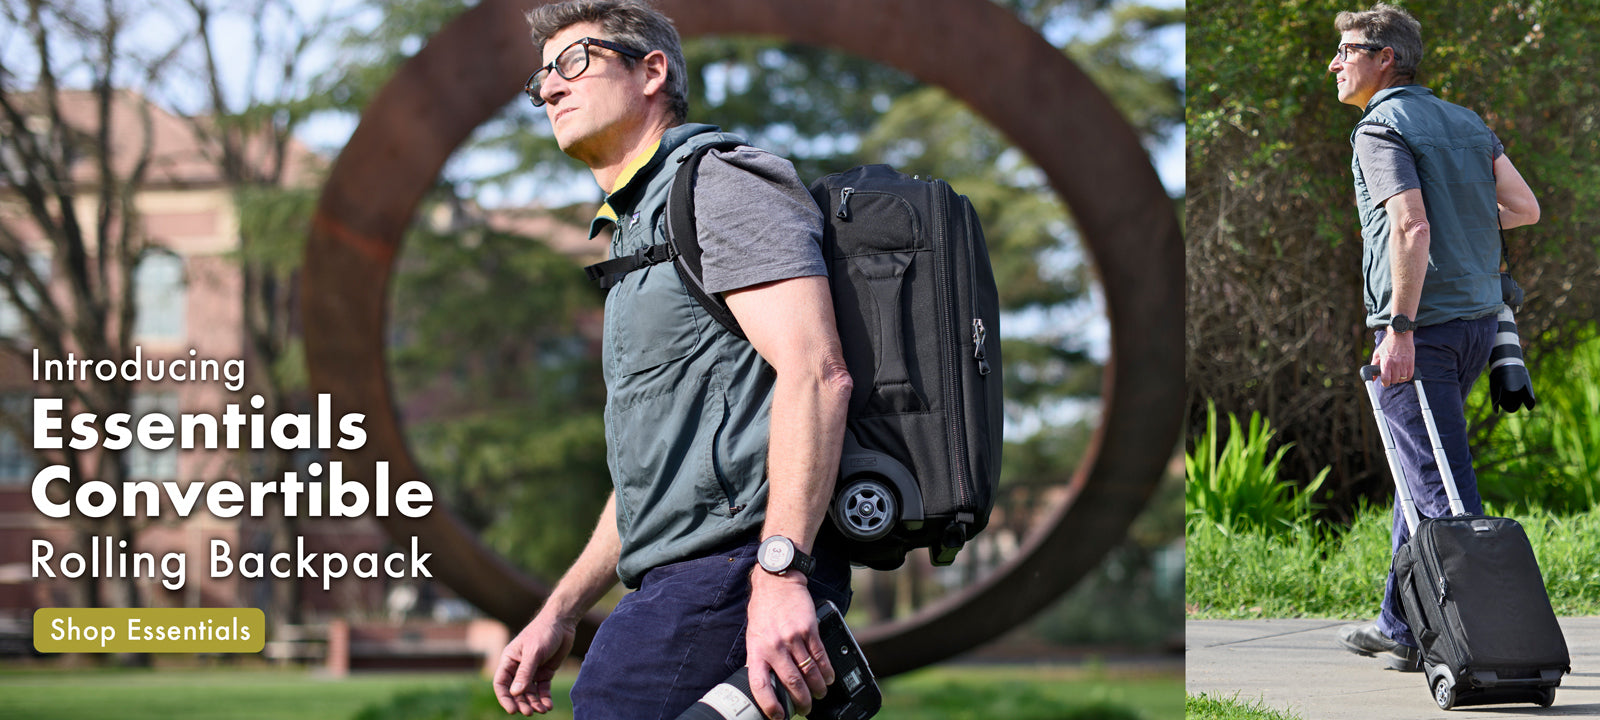 The Essentials Convertible rolling backpack goes where other rollers can't. Roll smoothly through the airport then deploy the backpack straps to carry over rough terrain.